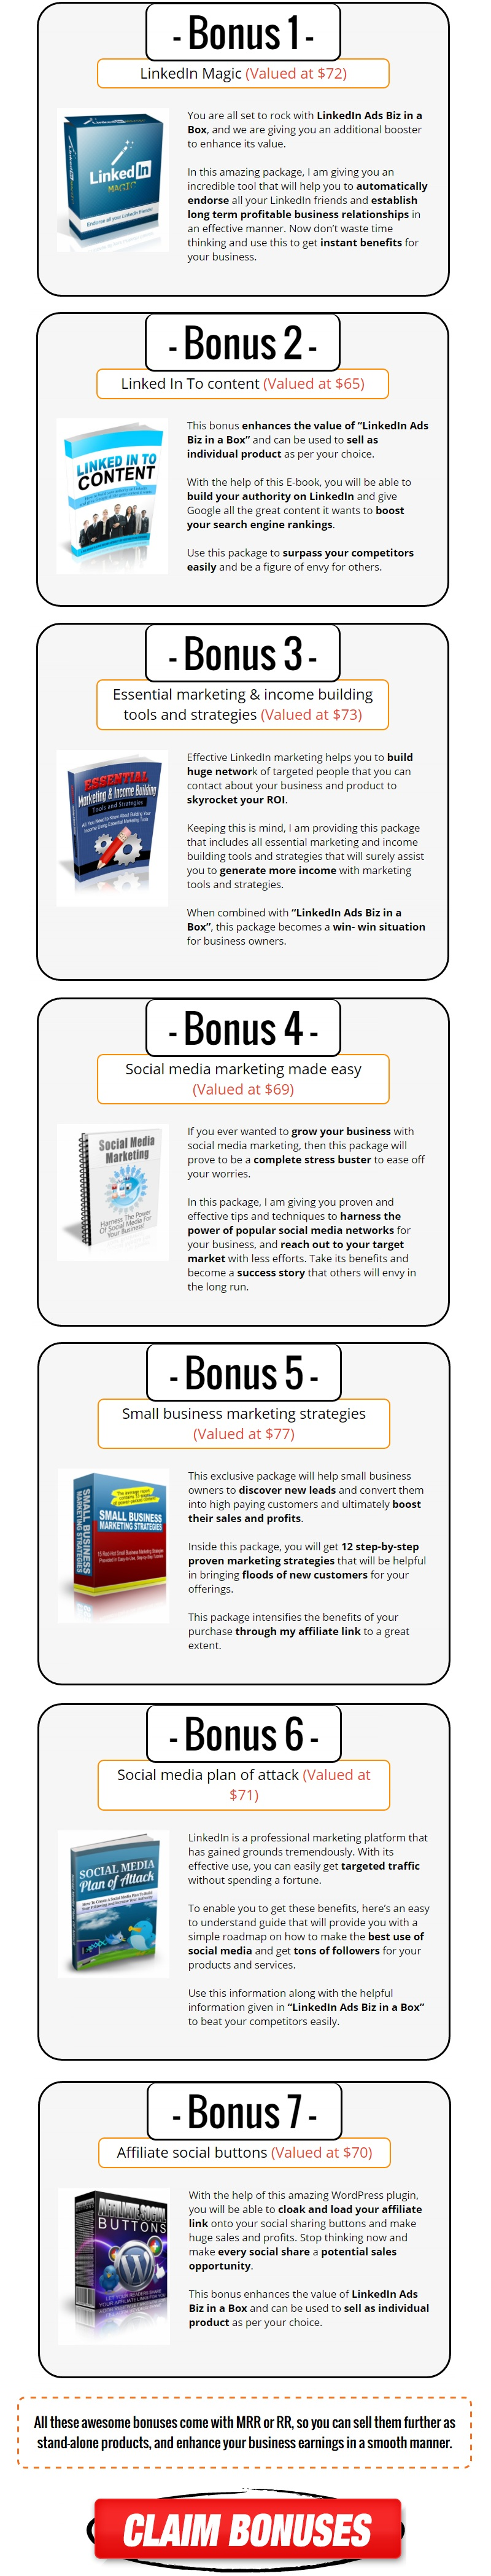 LinkedIn Ads Biz in a Box Bonus